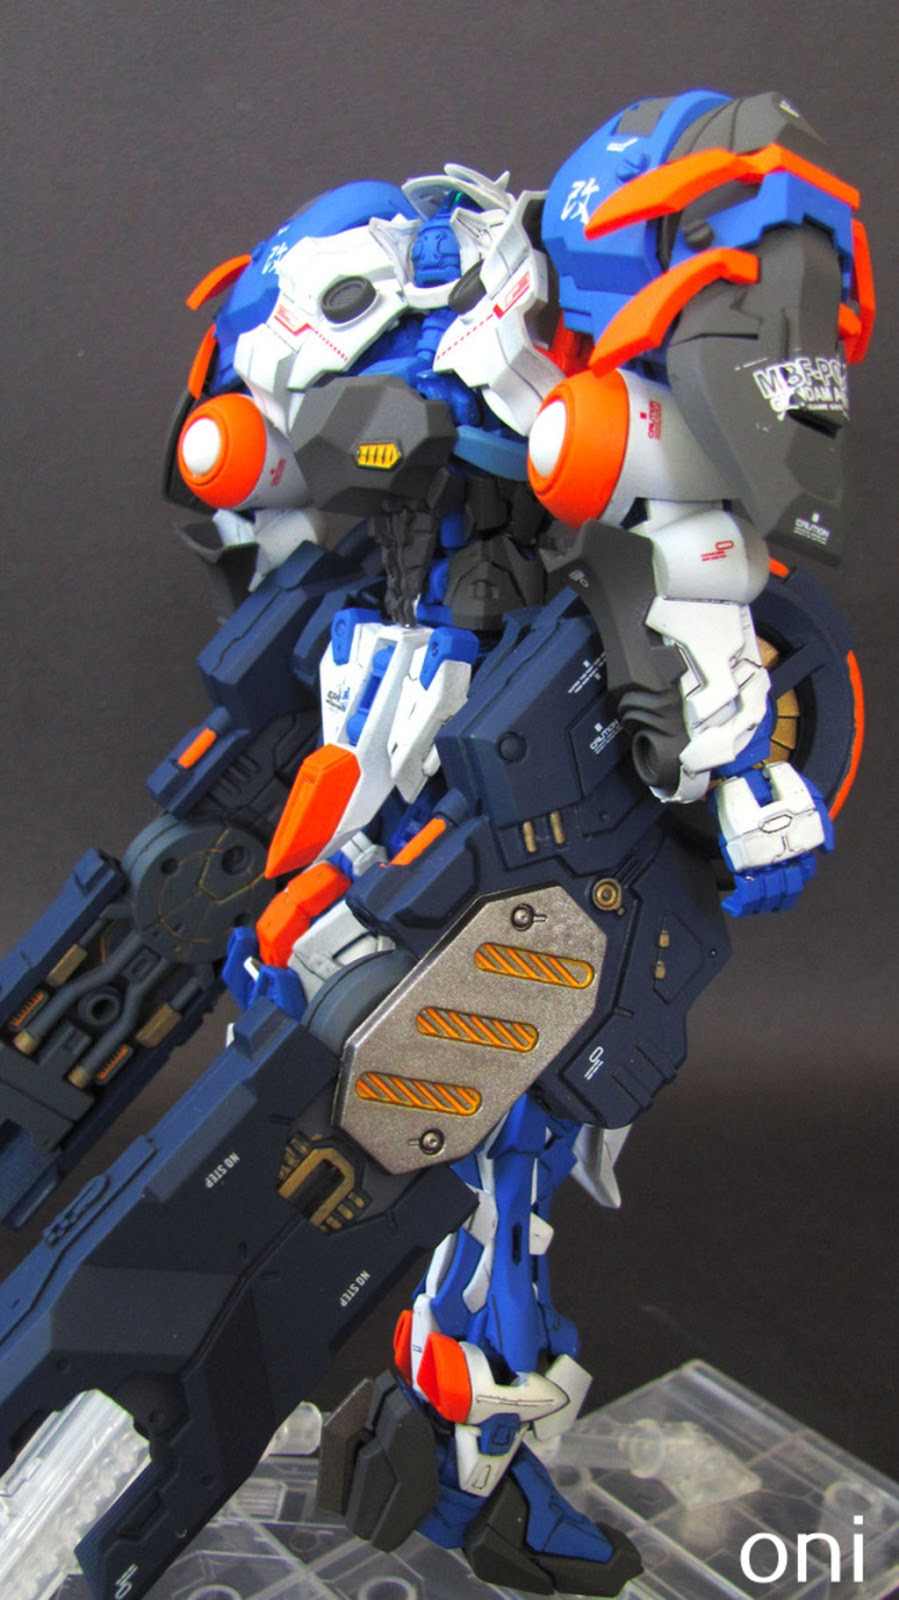 Custom Build: MG 1/100 Gundam Astray Blue Frame Powered Arms + Lohengrin Blaster